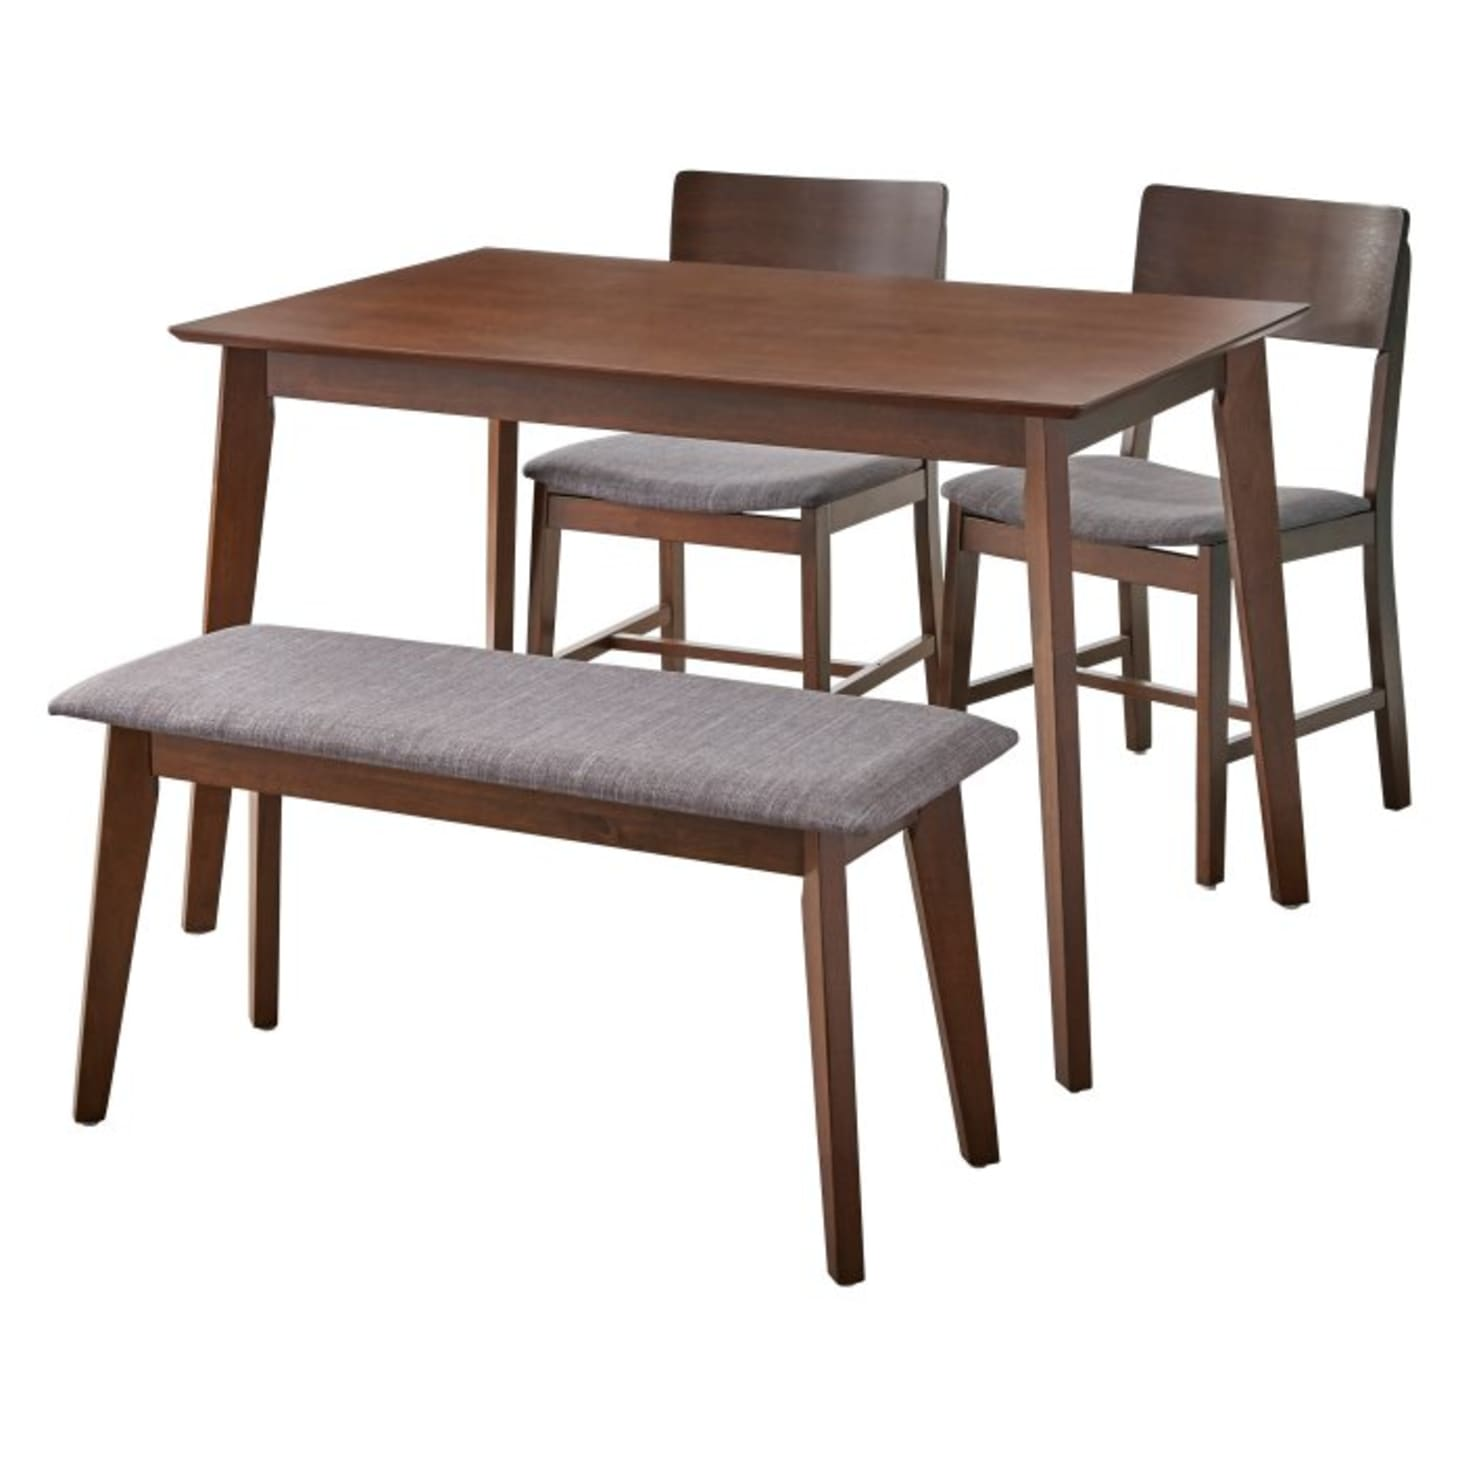 Prime Dining Table And Chair Sets For Small Spaces Kitchn Dailytribune Chair Design For Home Dailytribuneorg